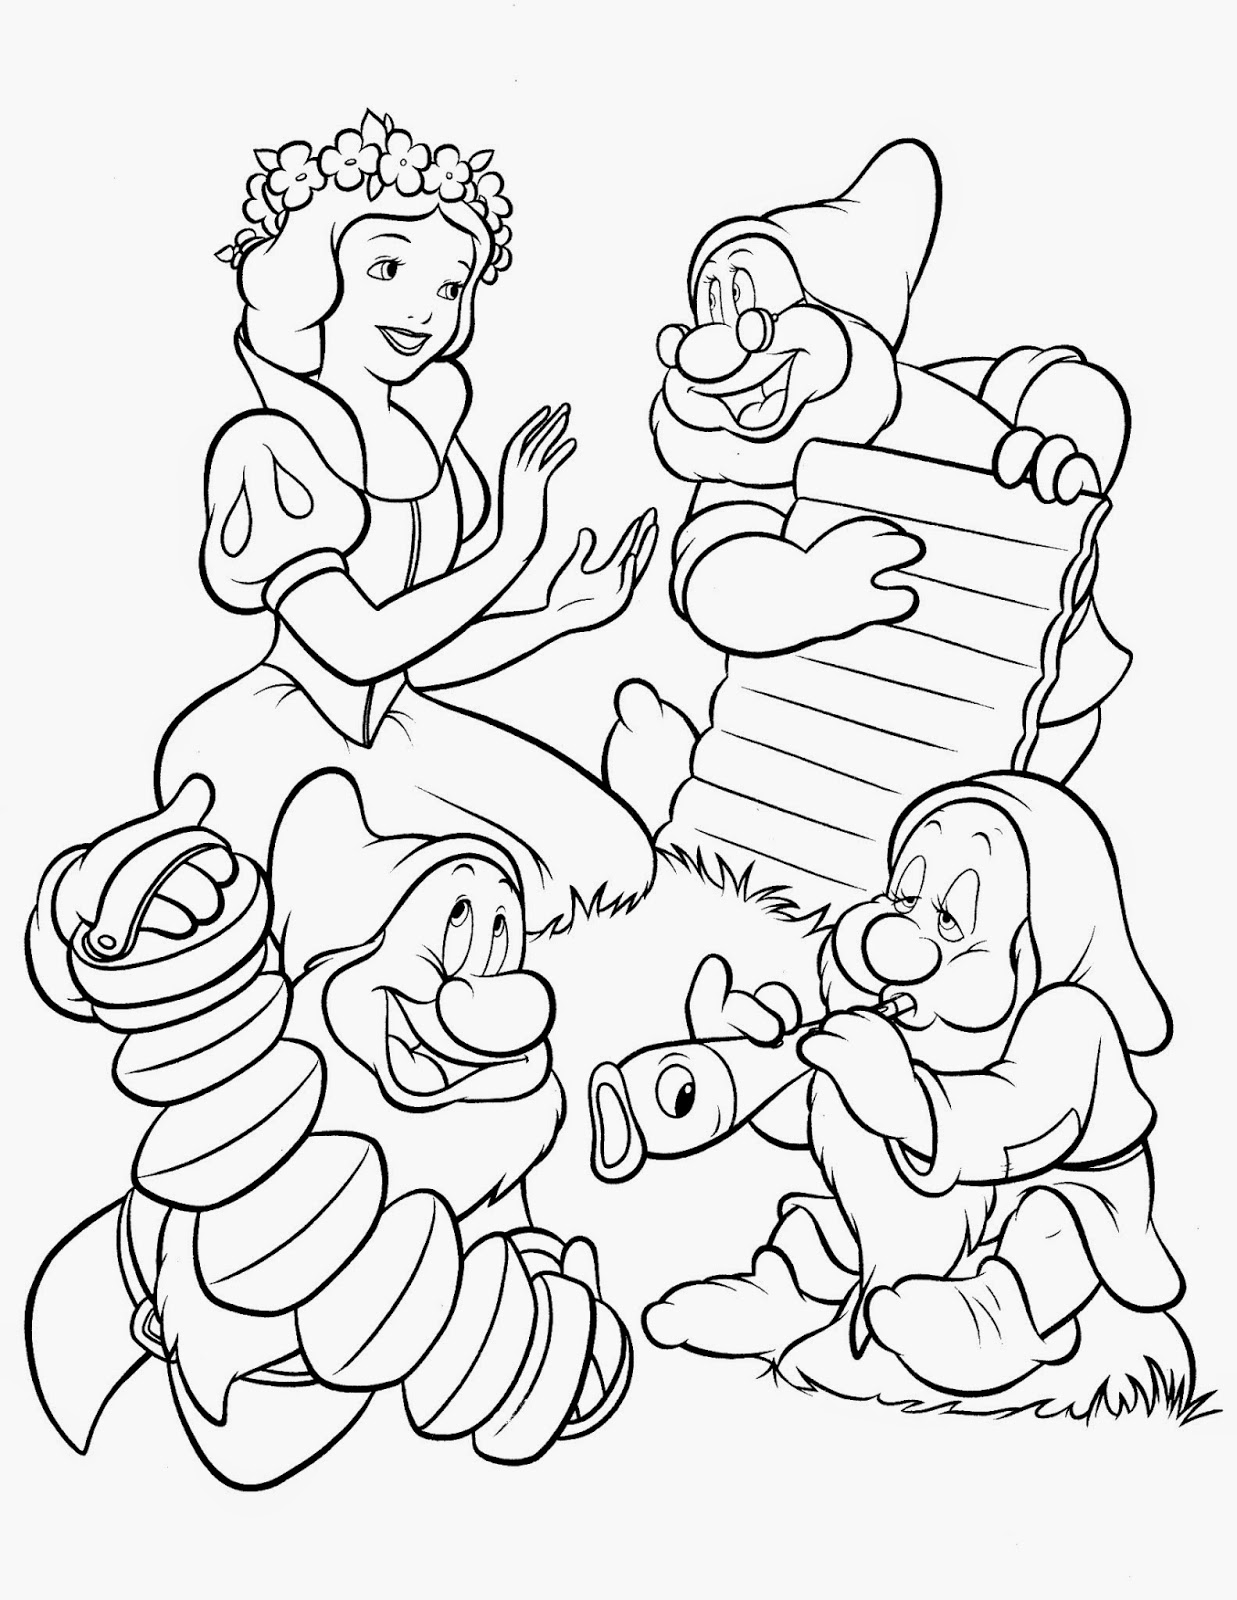 coloring images kids cartoon coloring pages cartoon coloring pages coloring images